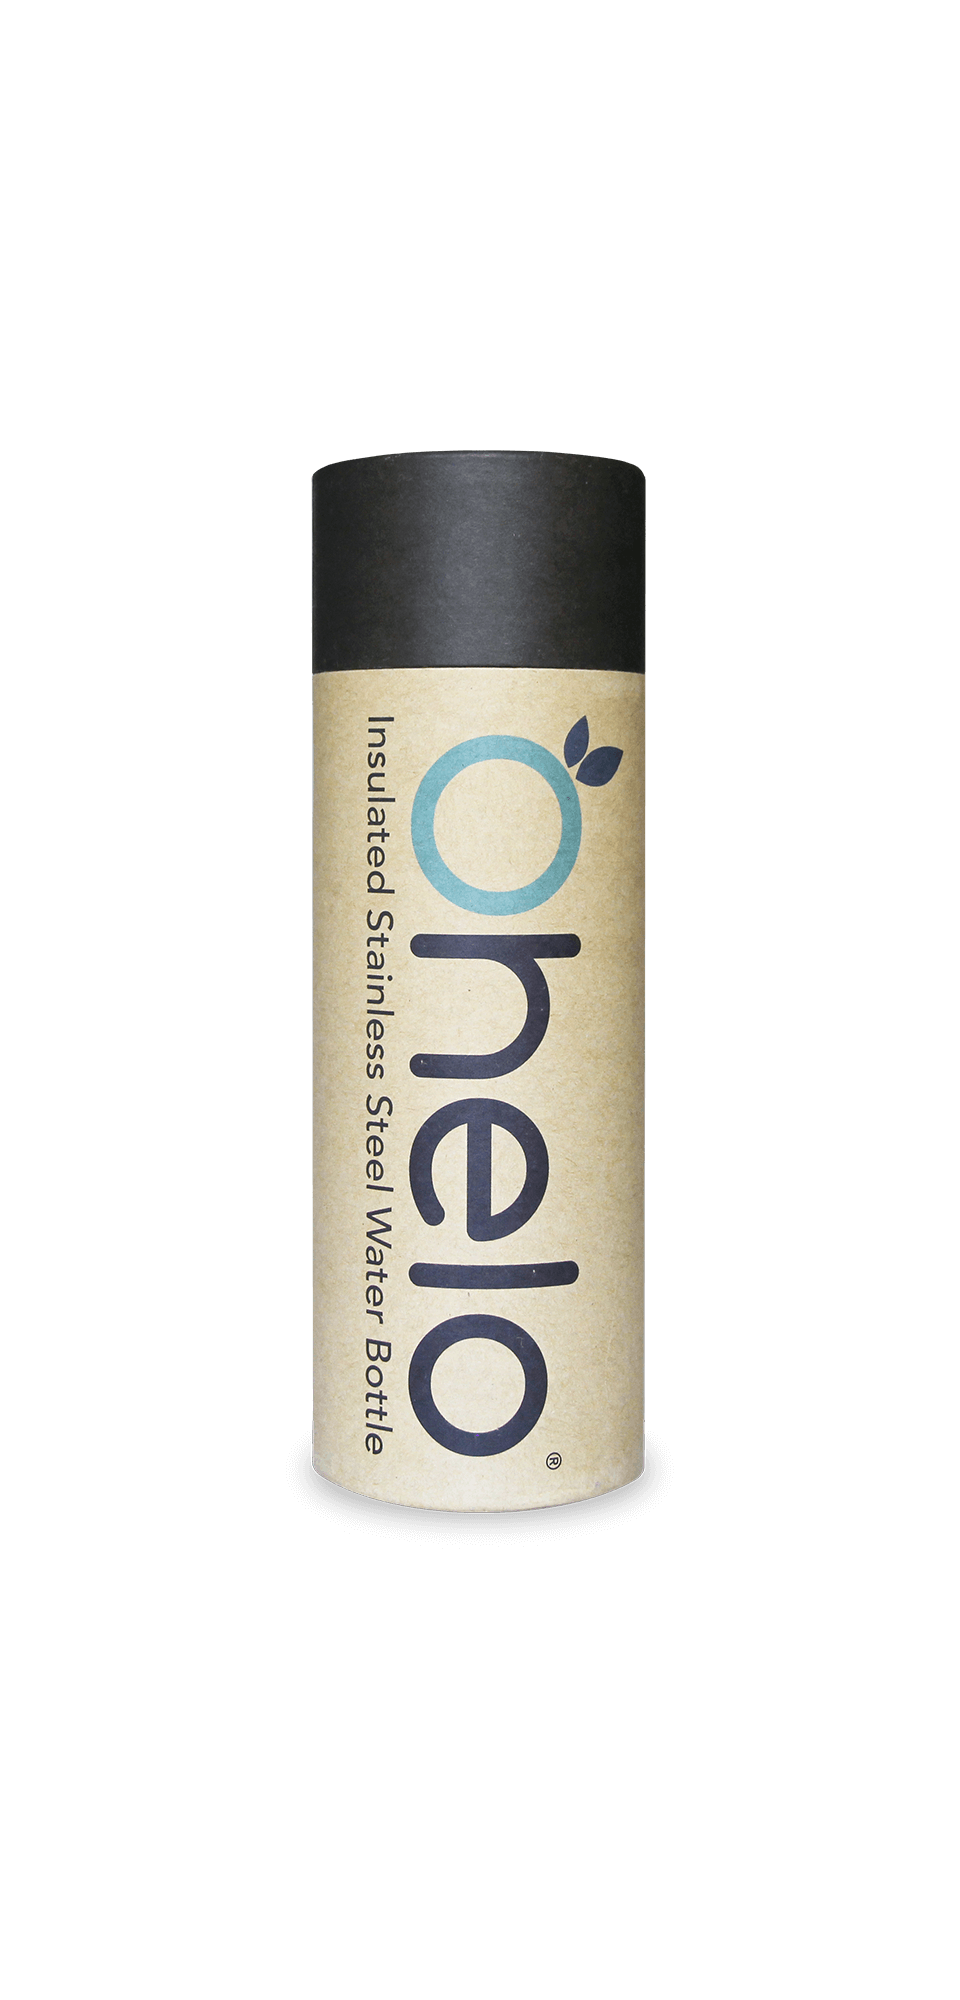 Ohelo black water bottle box